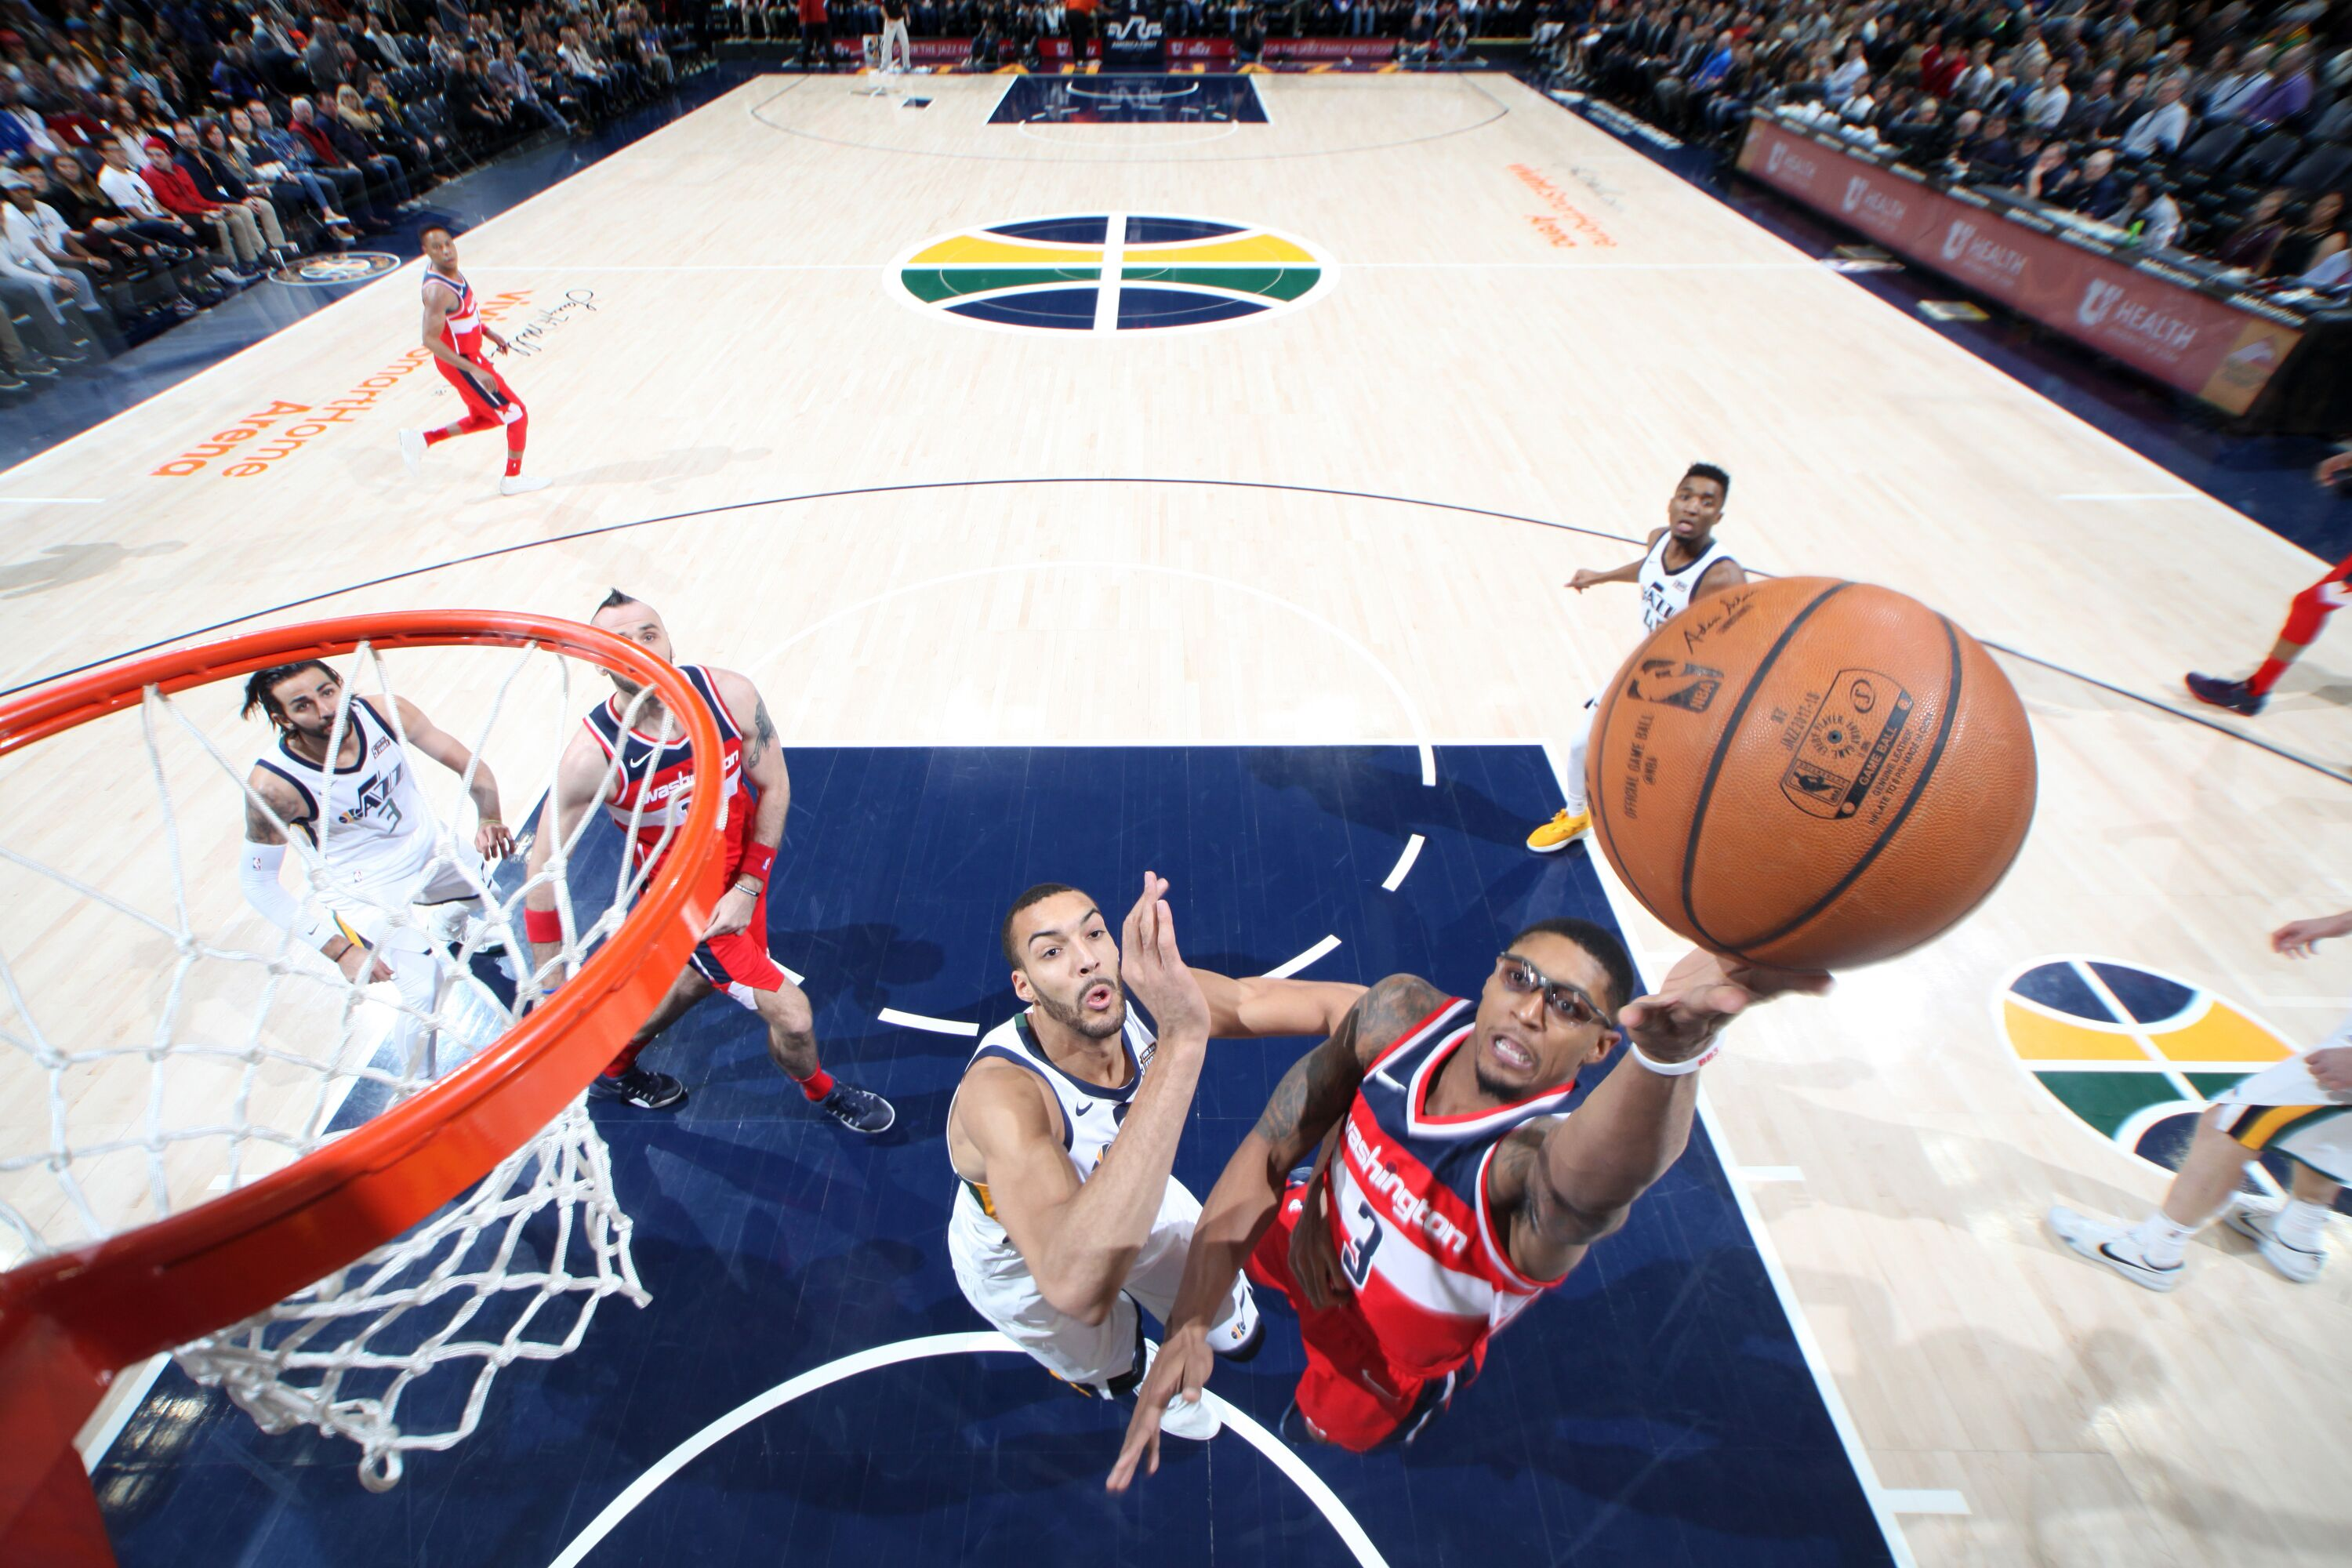 885848326-washington-wizards-v-utah-jazz.jpg